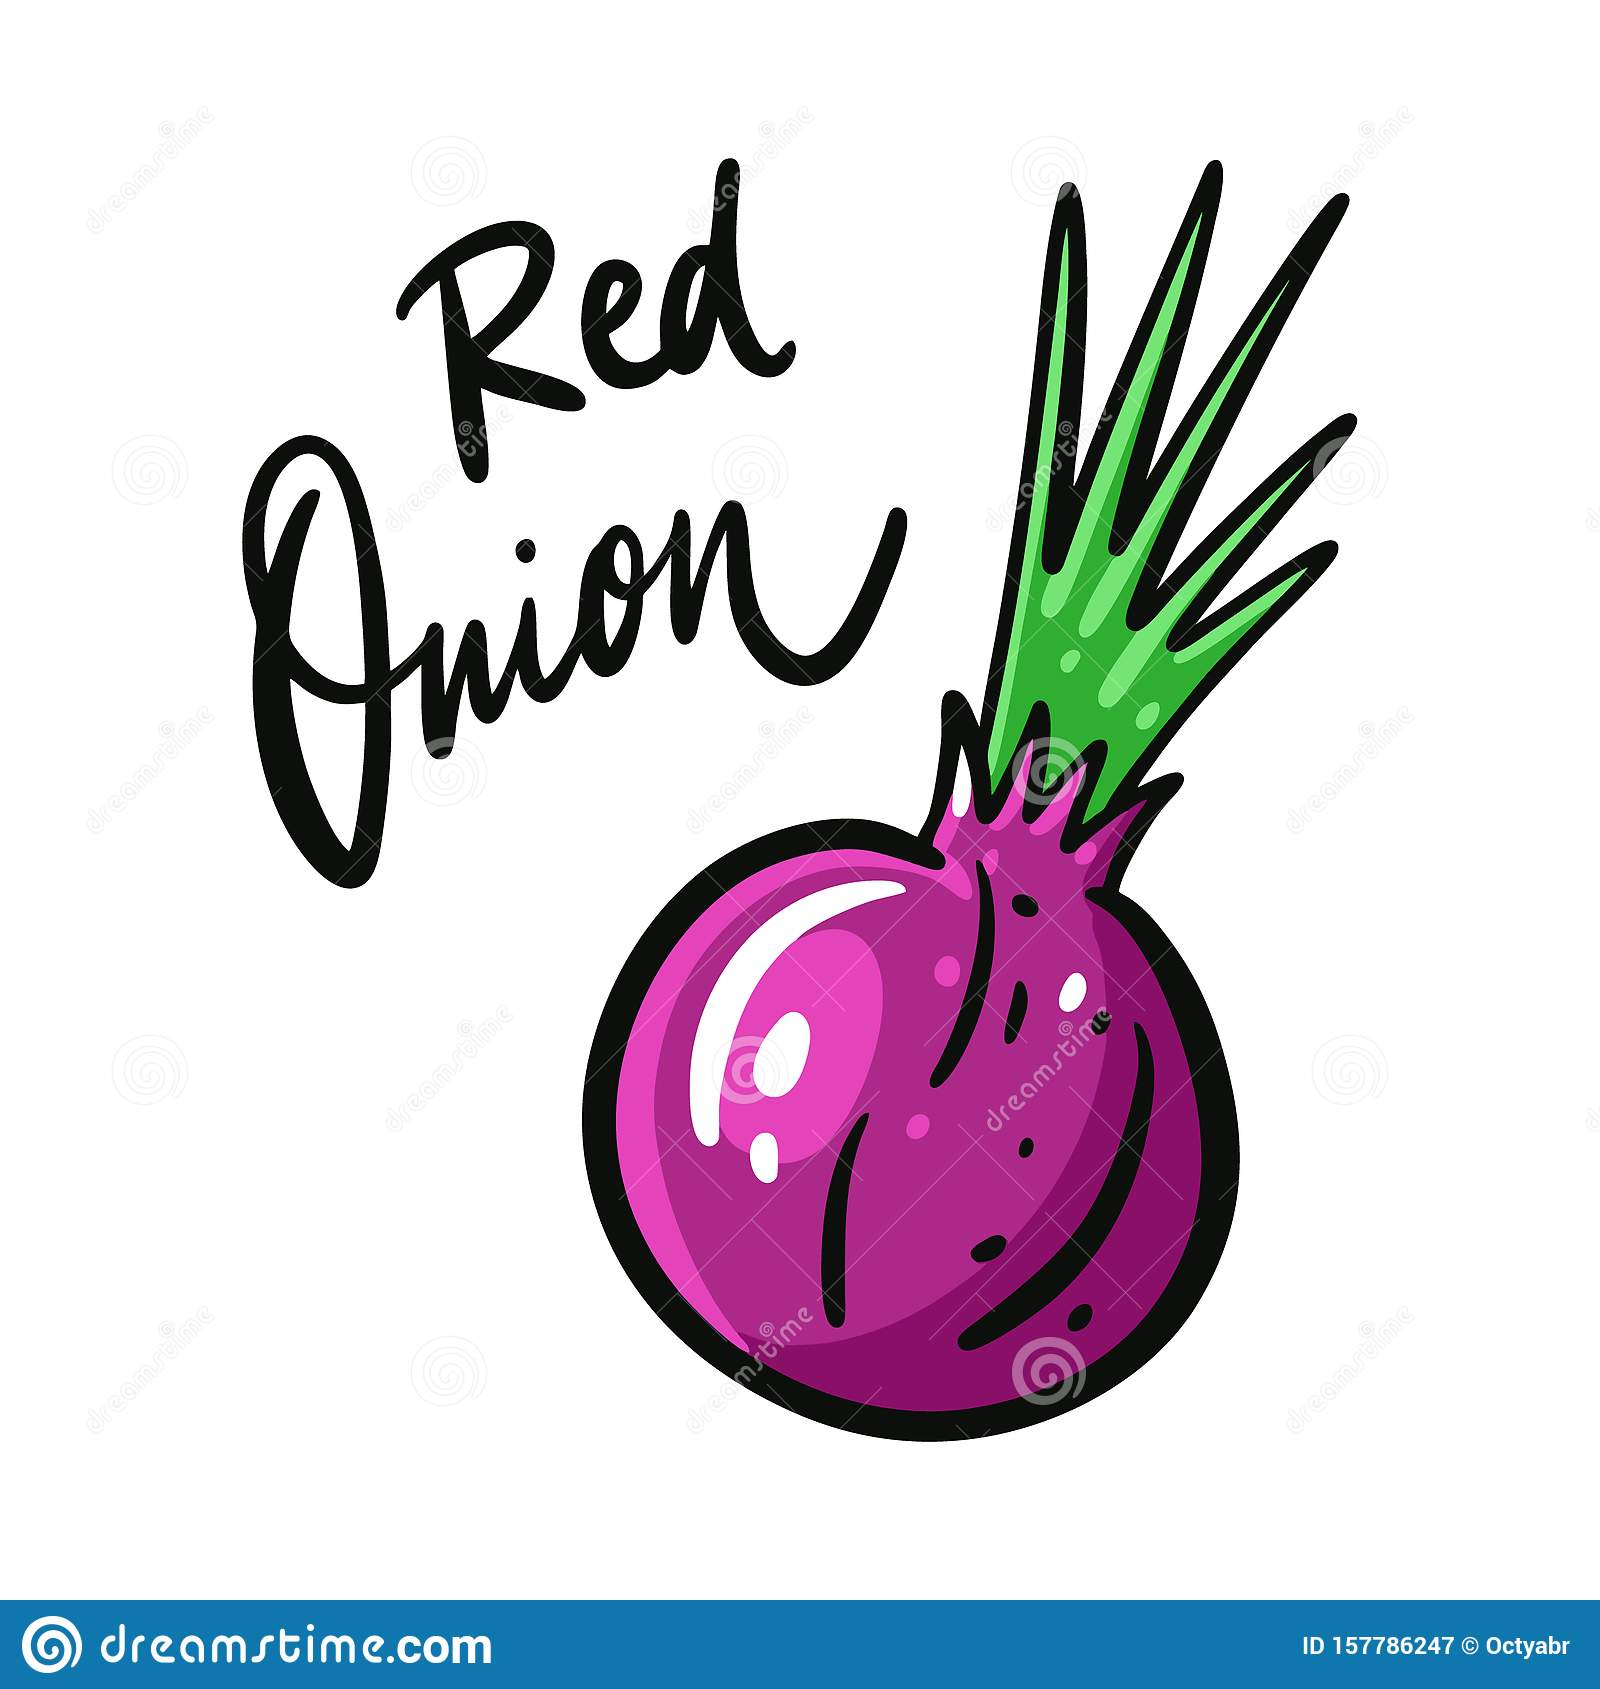 Red Onion Hand Drawn Vector Illustration And Lettering ...